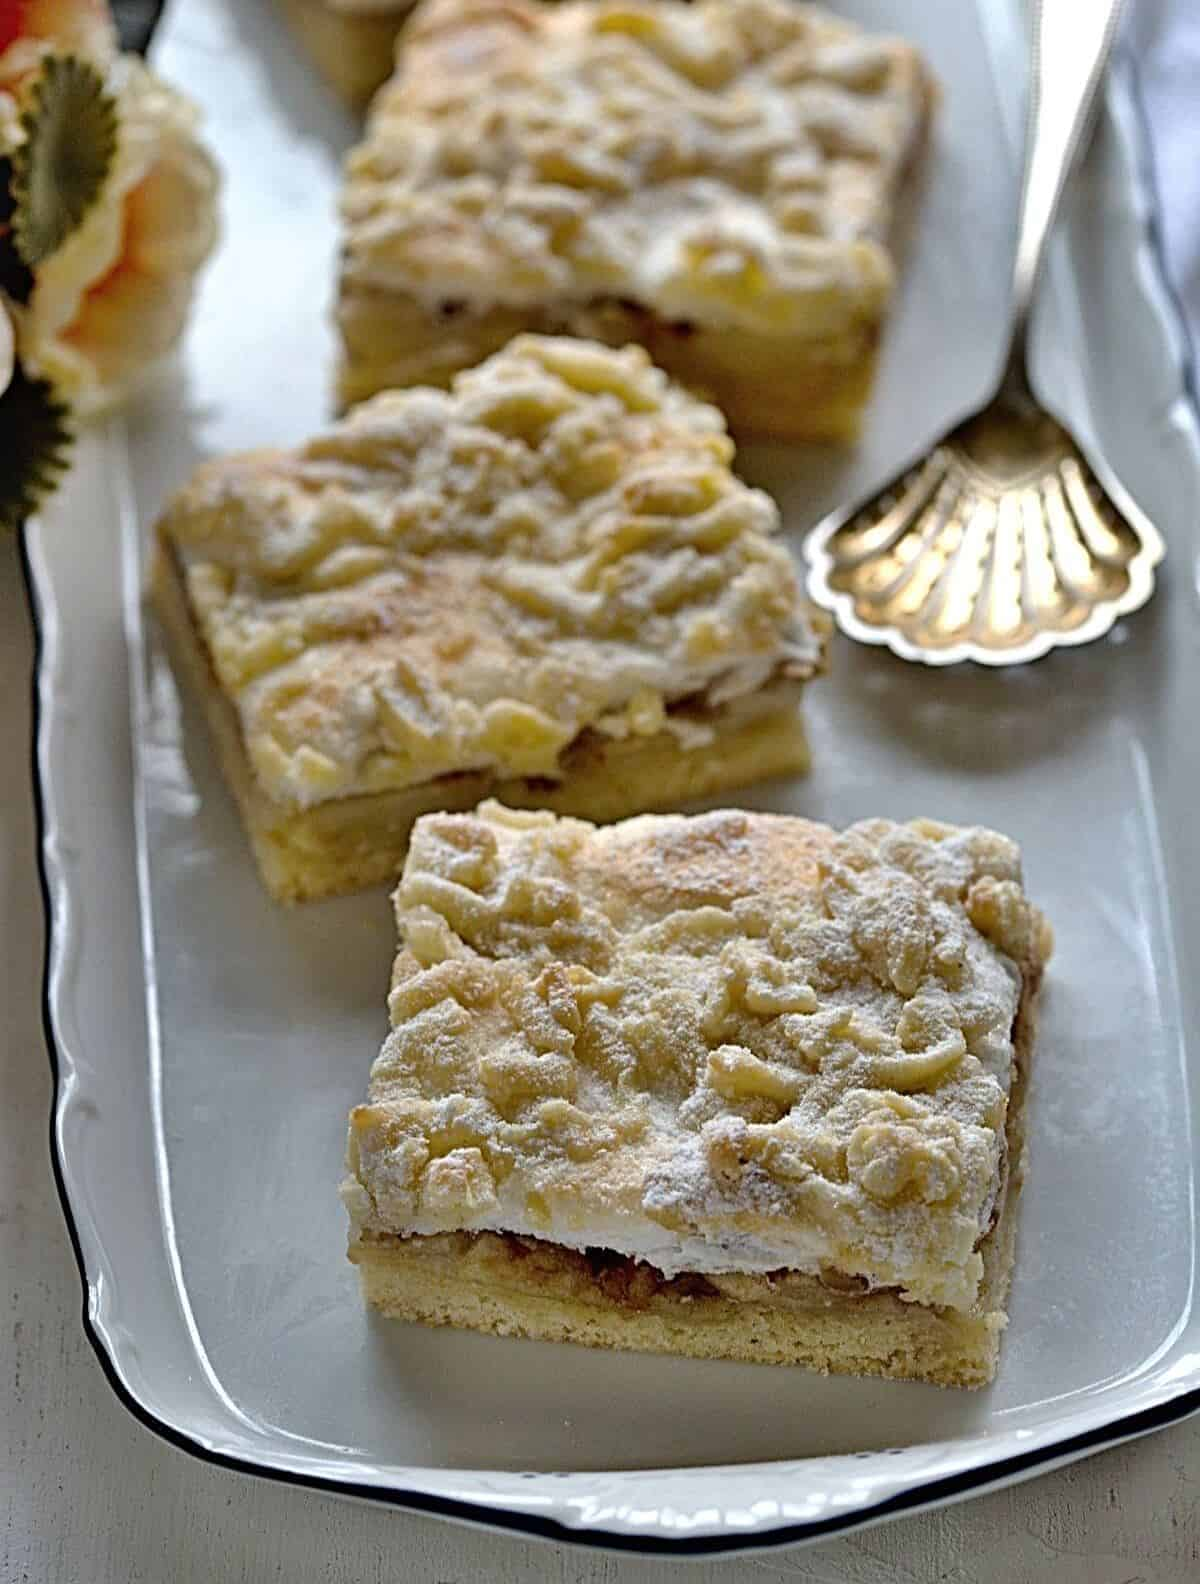 Czech apple slice with meringue topping.